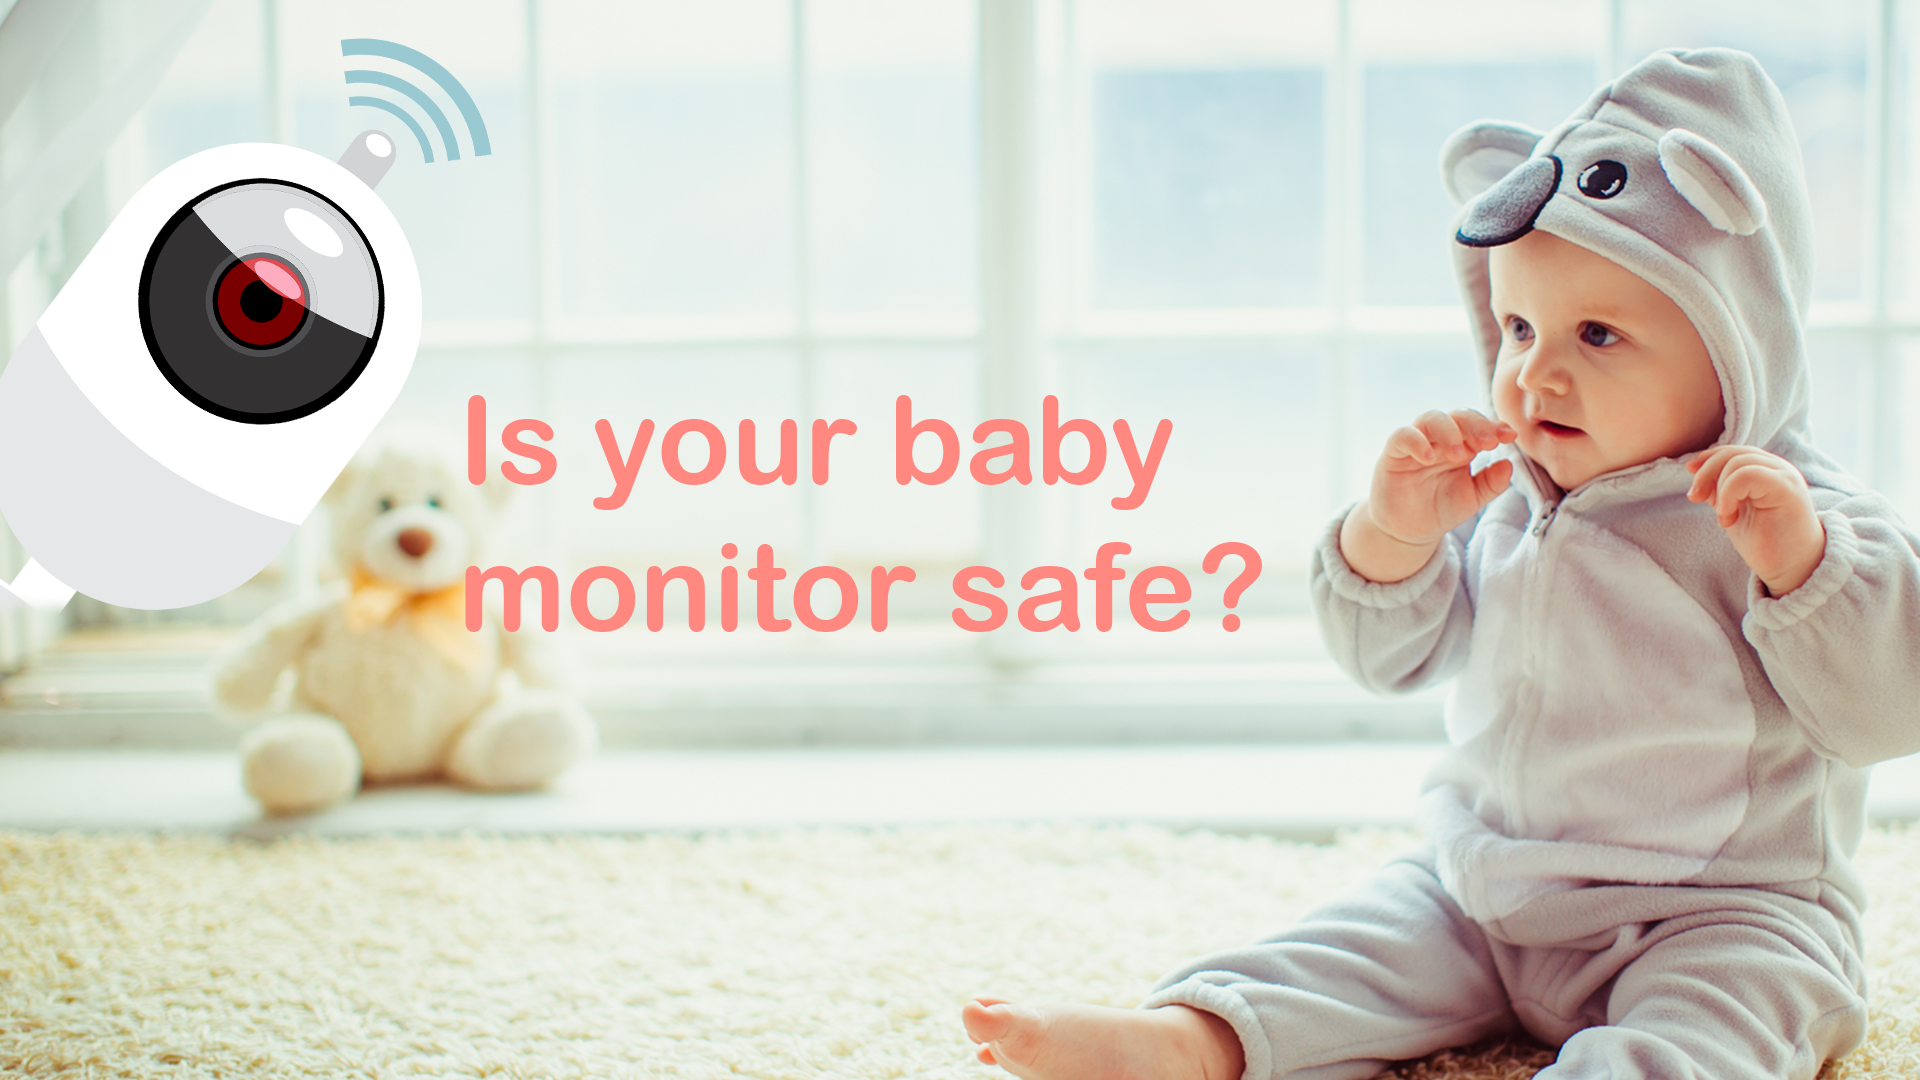 Is your baby monitor safe?